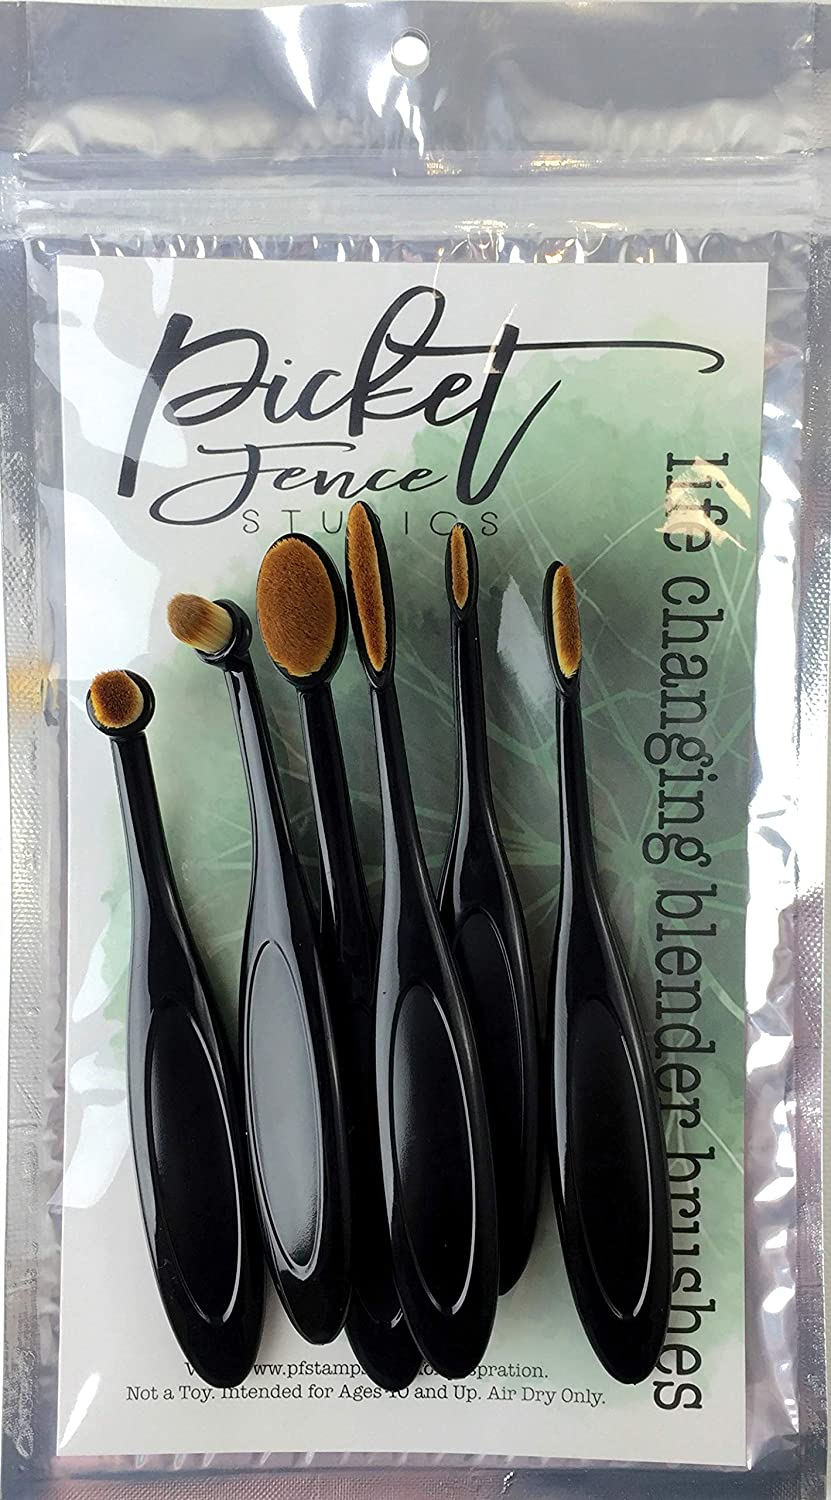 Picket Fence Studios Blender Brushes 6/Pkg